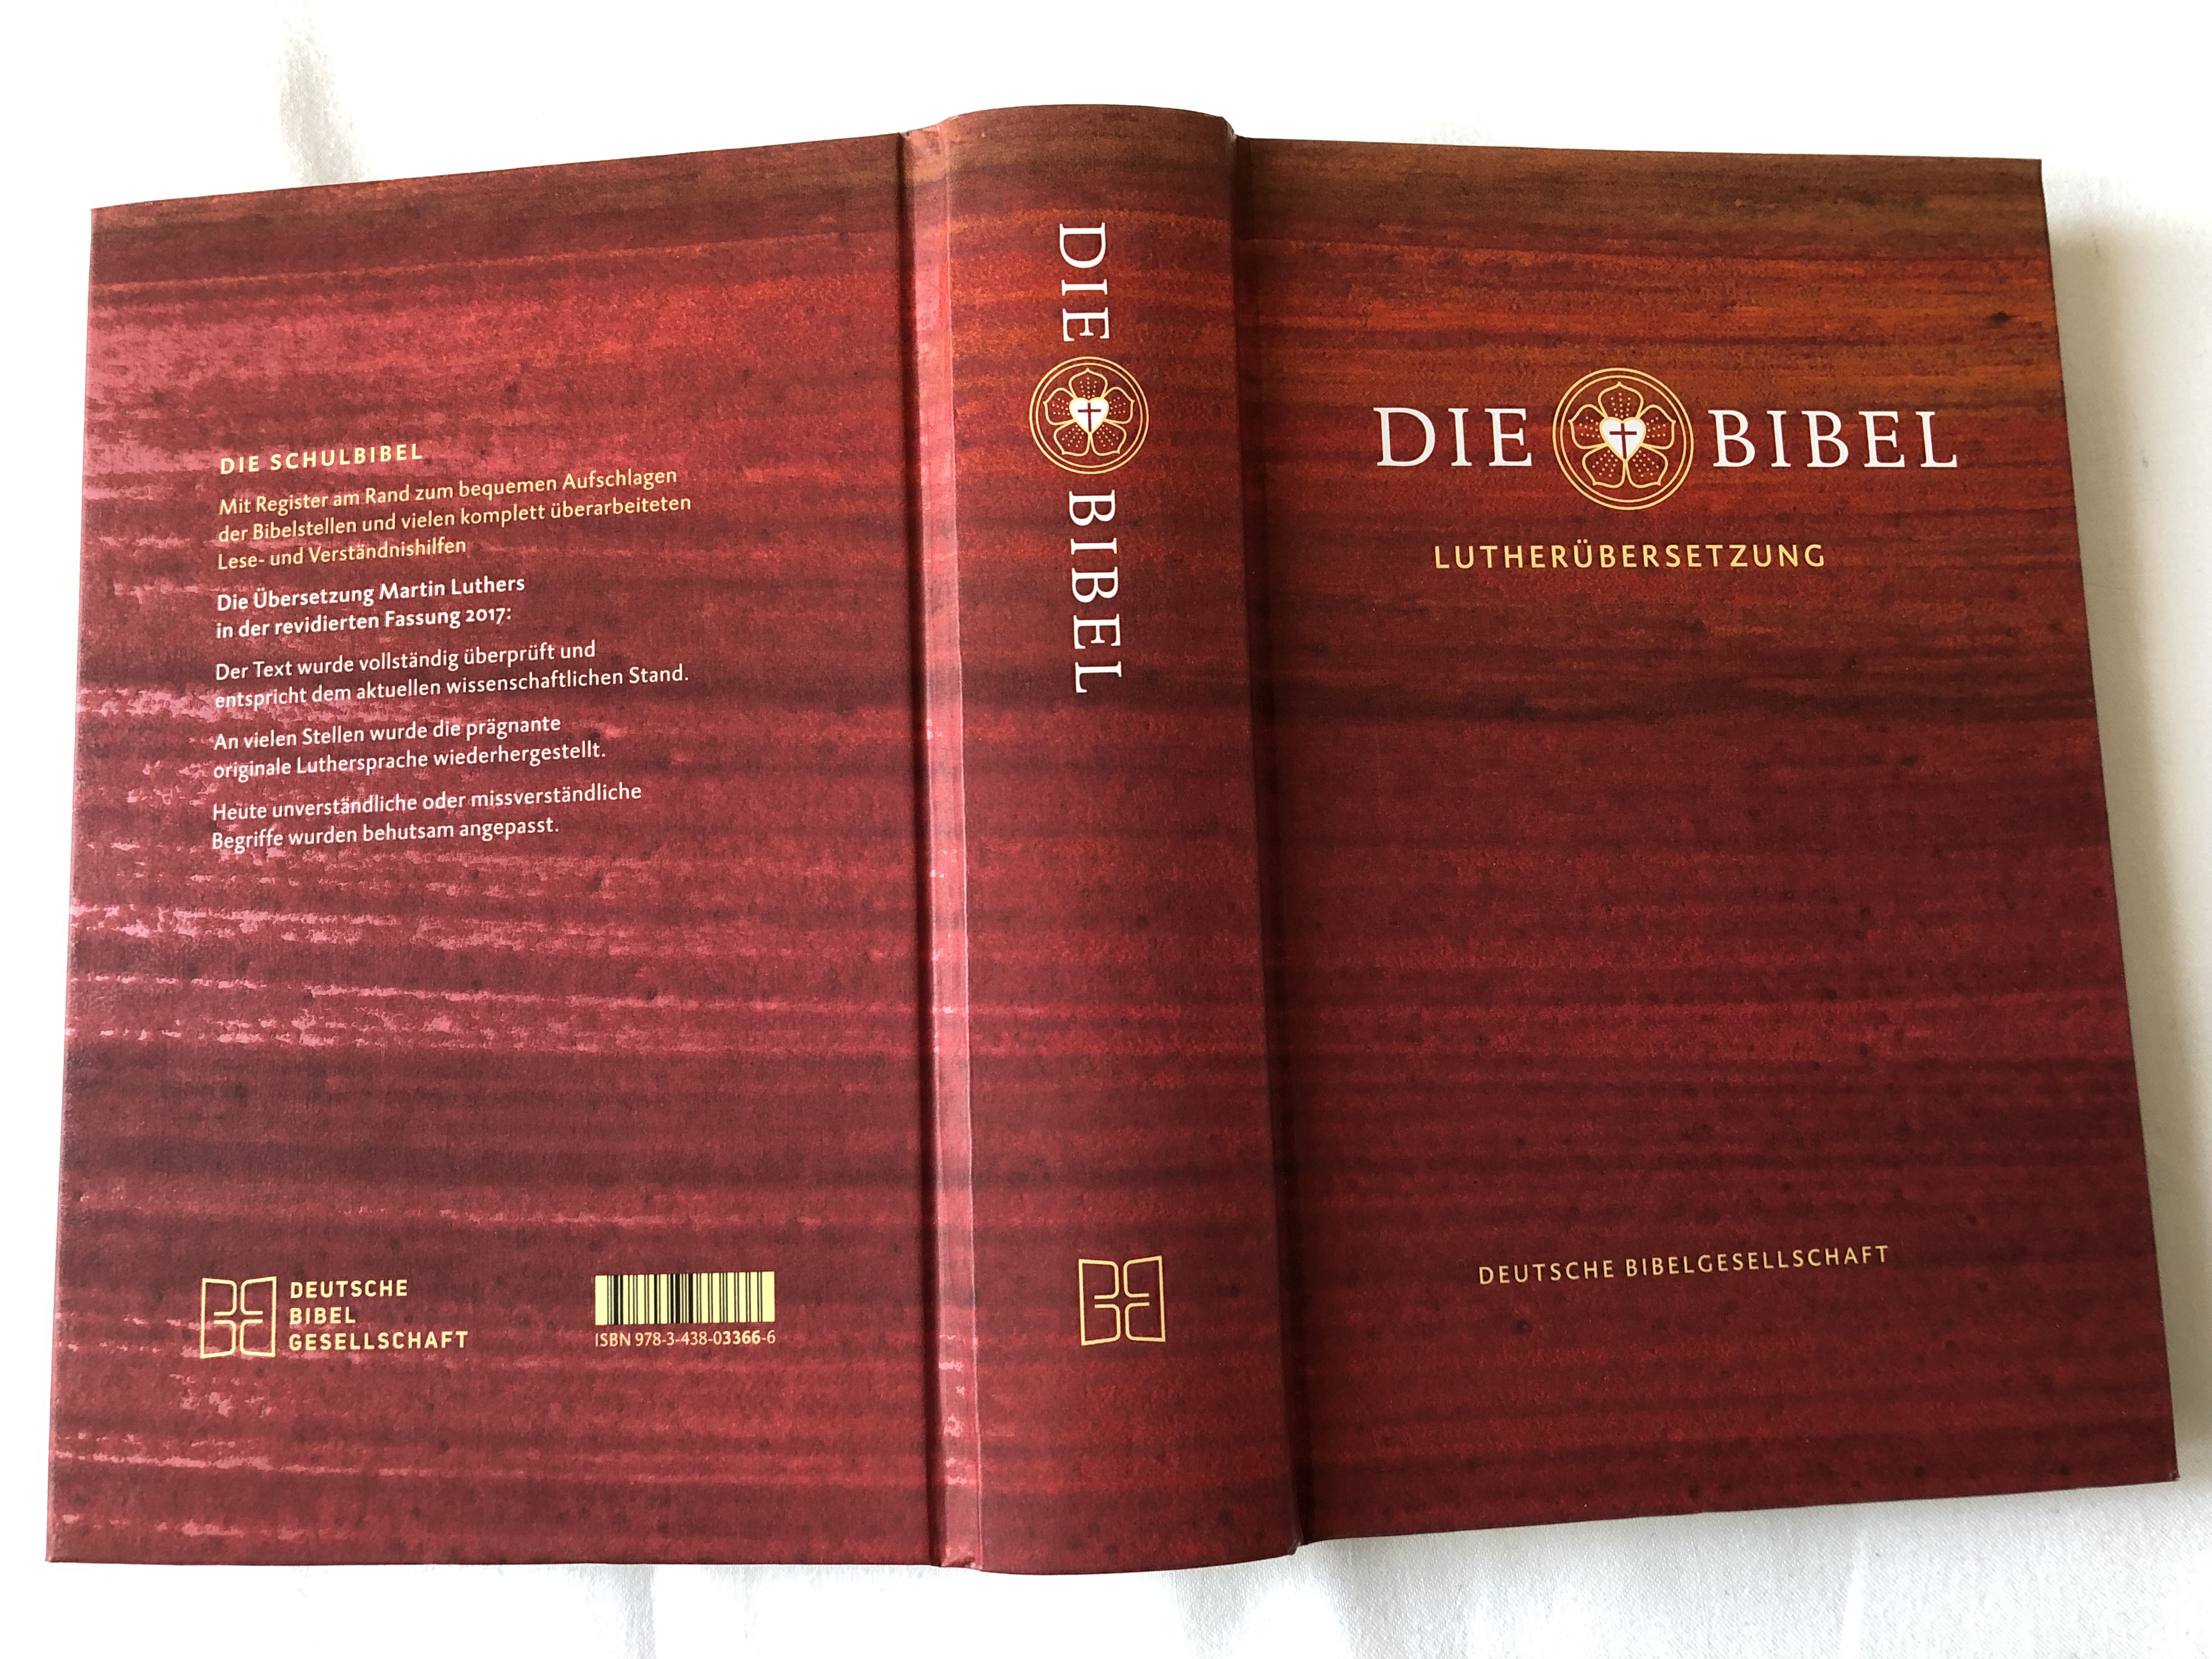 die-bibel-luther-bersetzung-schulbibel-german-language-bible-luther-translation-deutsche-bibelgesellschaft-mit-apocryphen-translation-2017-rev.-with-apocrypha-page-index-color-maps-hardcover-20-.jpg